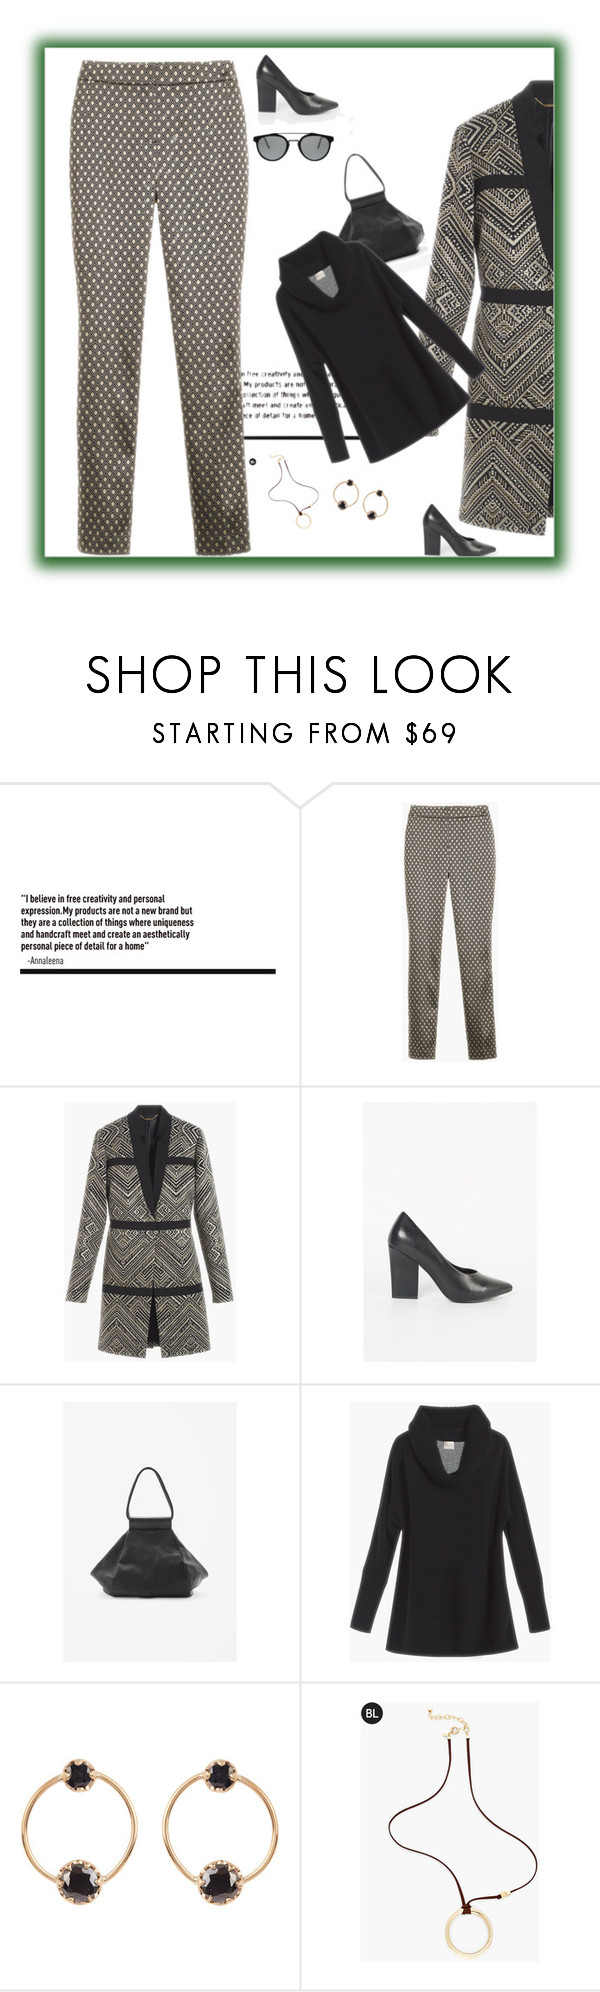 """""""Work it!"""" by peeweevaaz ❤ liked on Polyvore featuring COS, Loren Stewart, Chico's, RetroSuperFuture, outfit, officewear, polyvoreeditorial and polyvorefashion"""